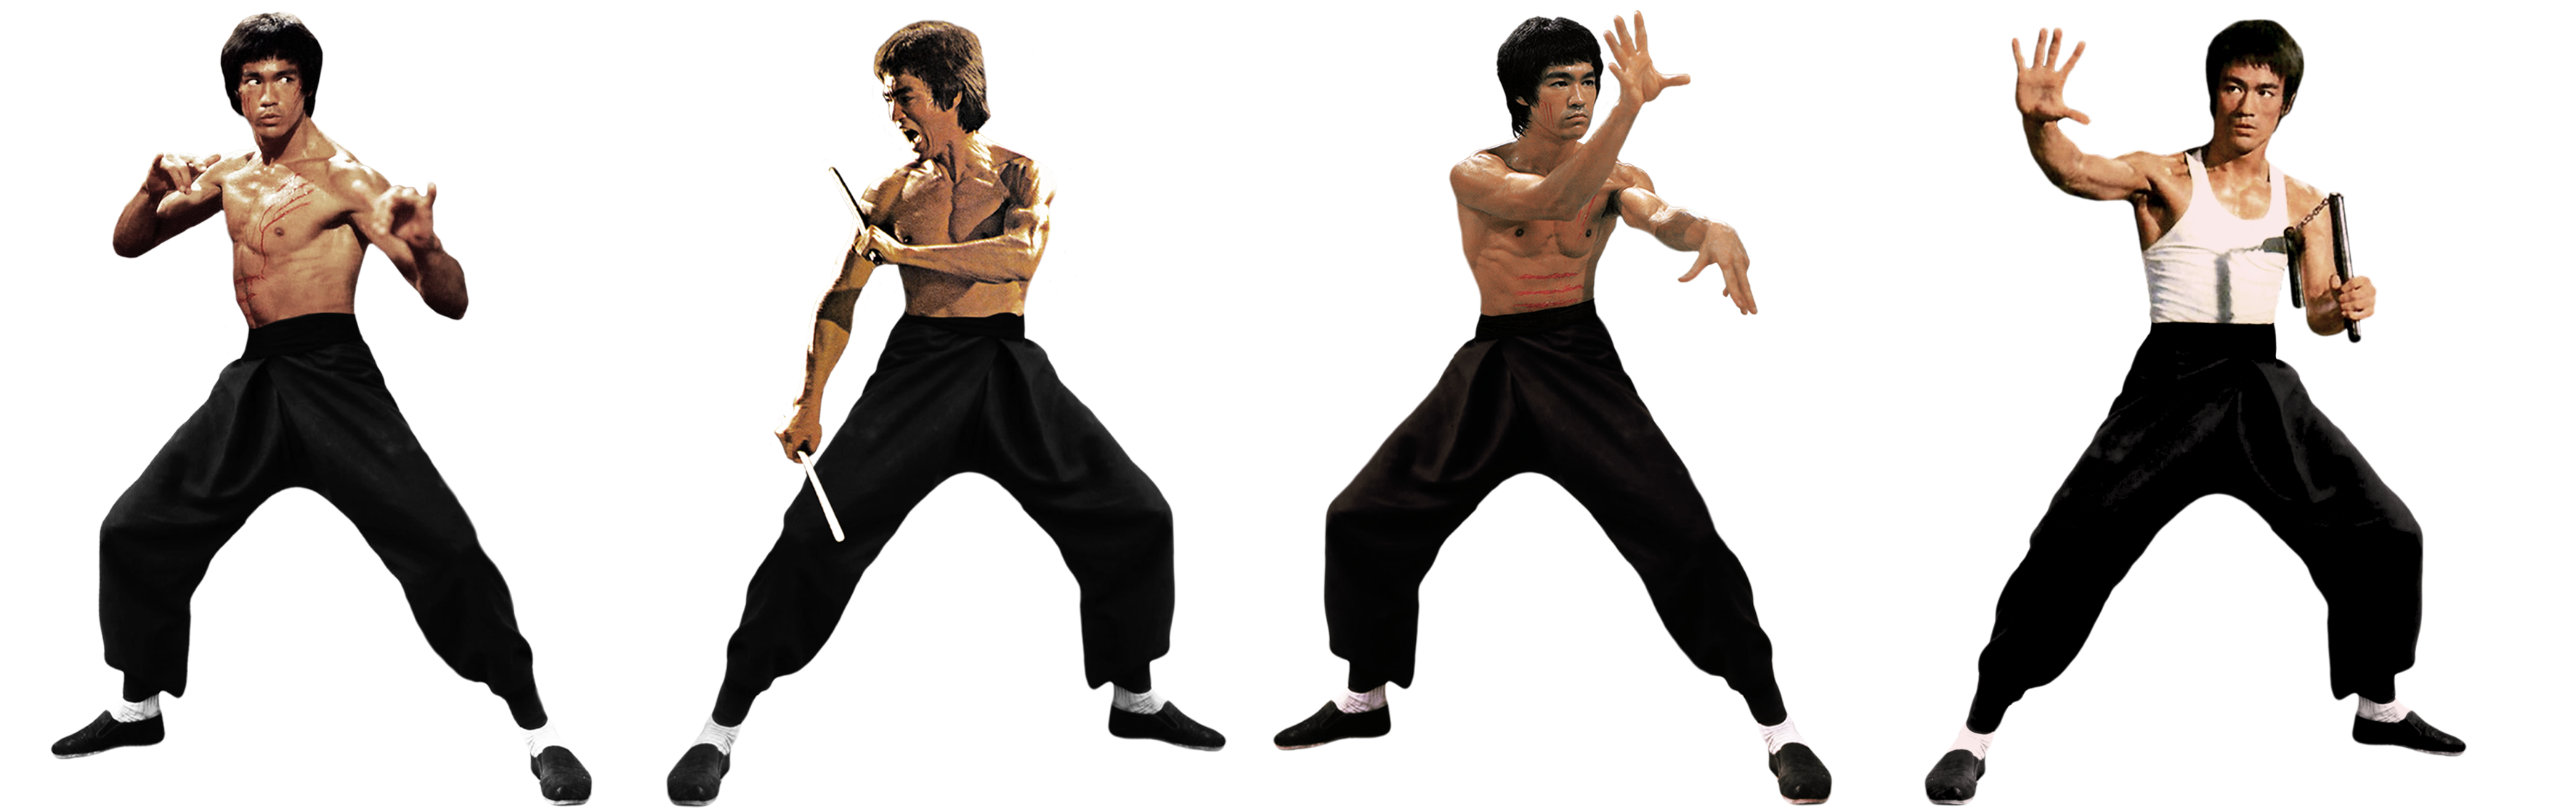 Bruce Lee Bruce Lee Martial Arts Actor Hollywood Actor